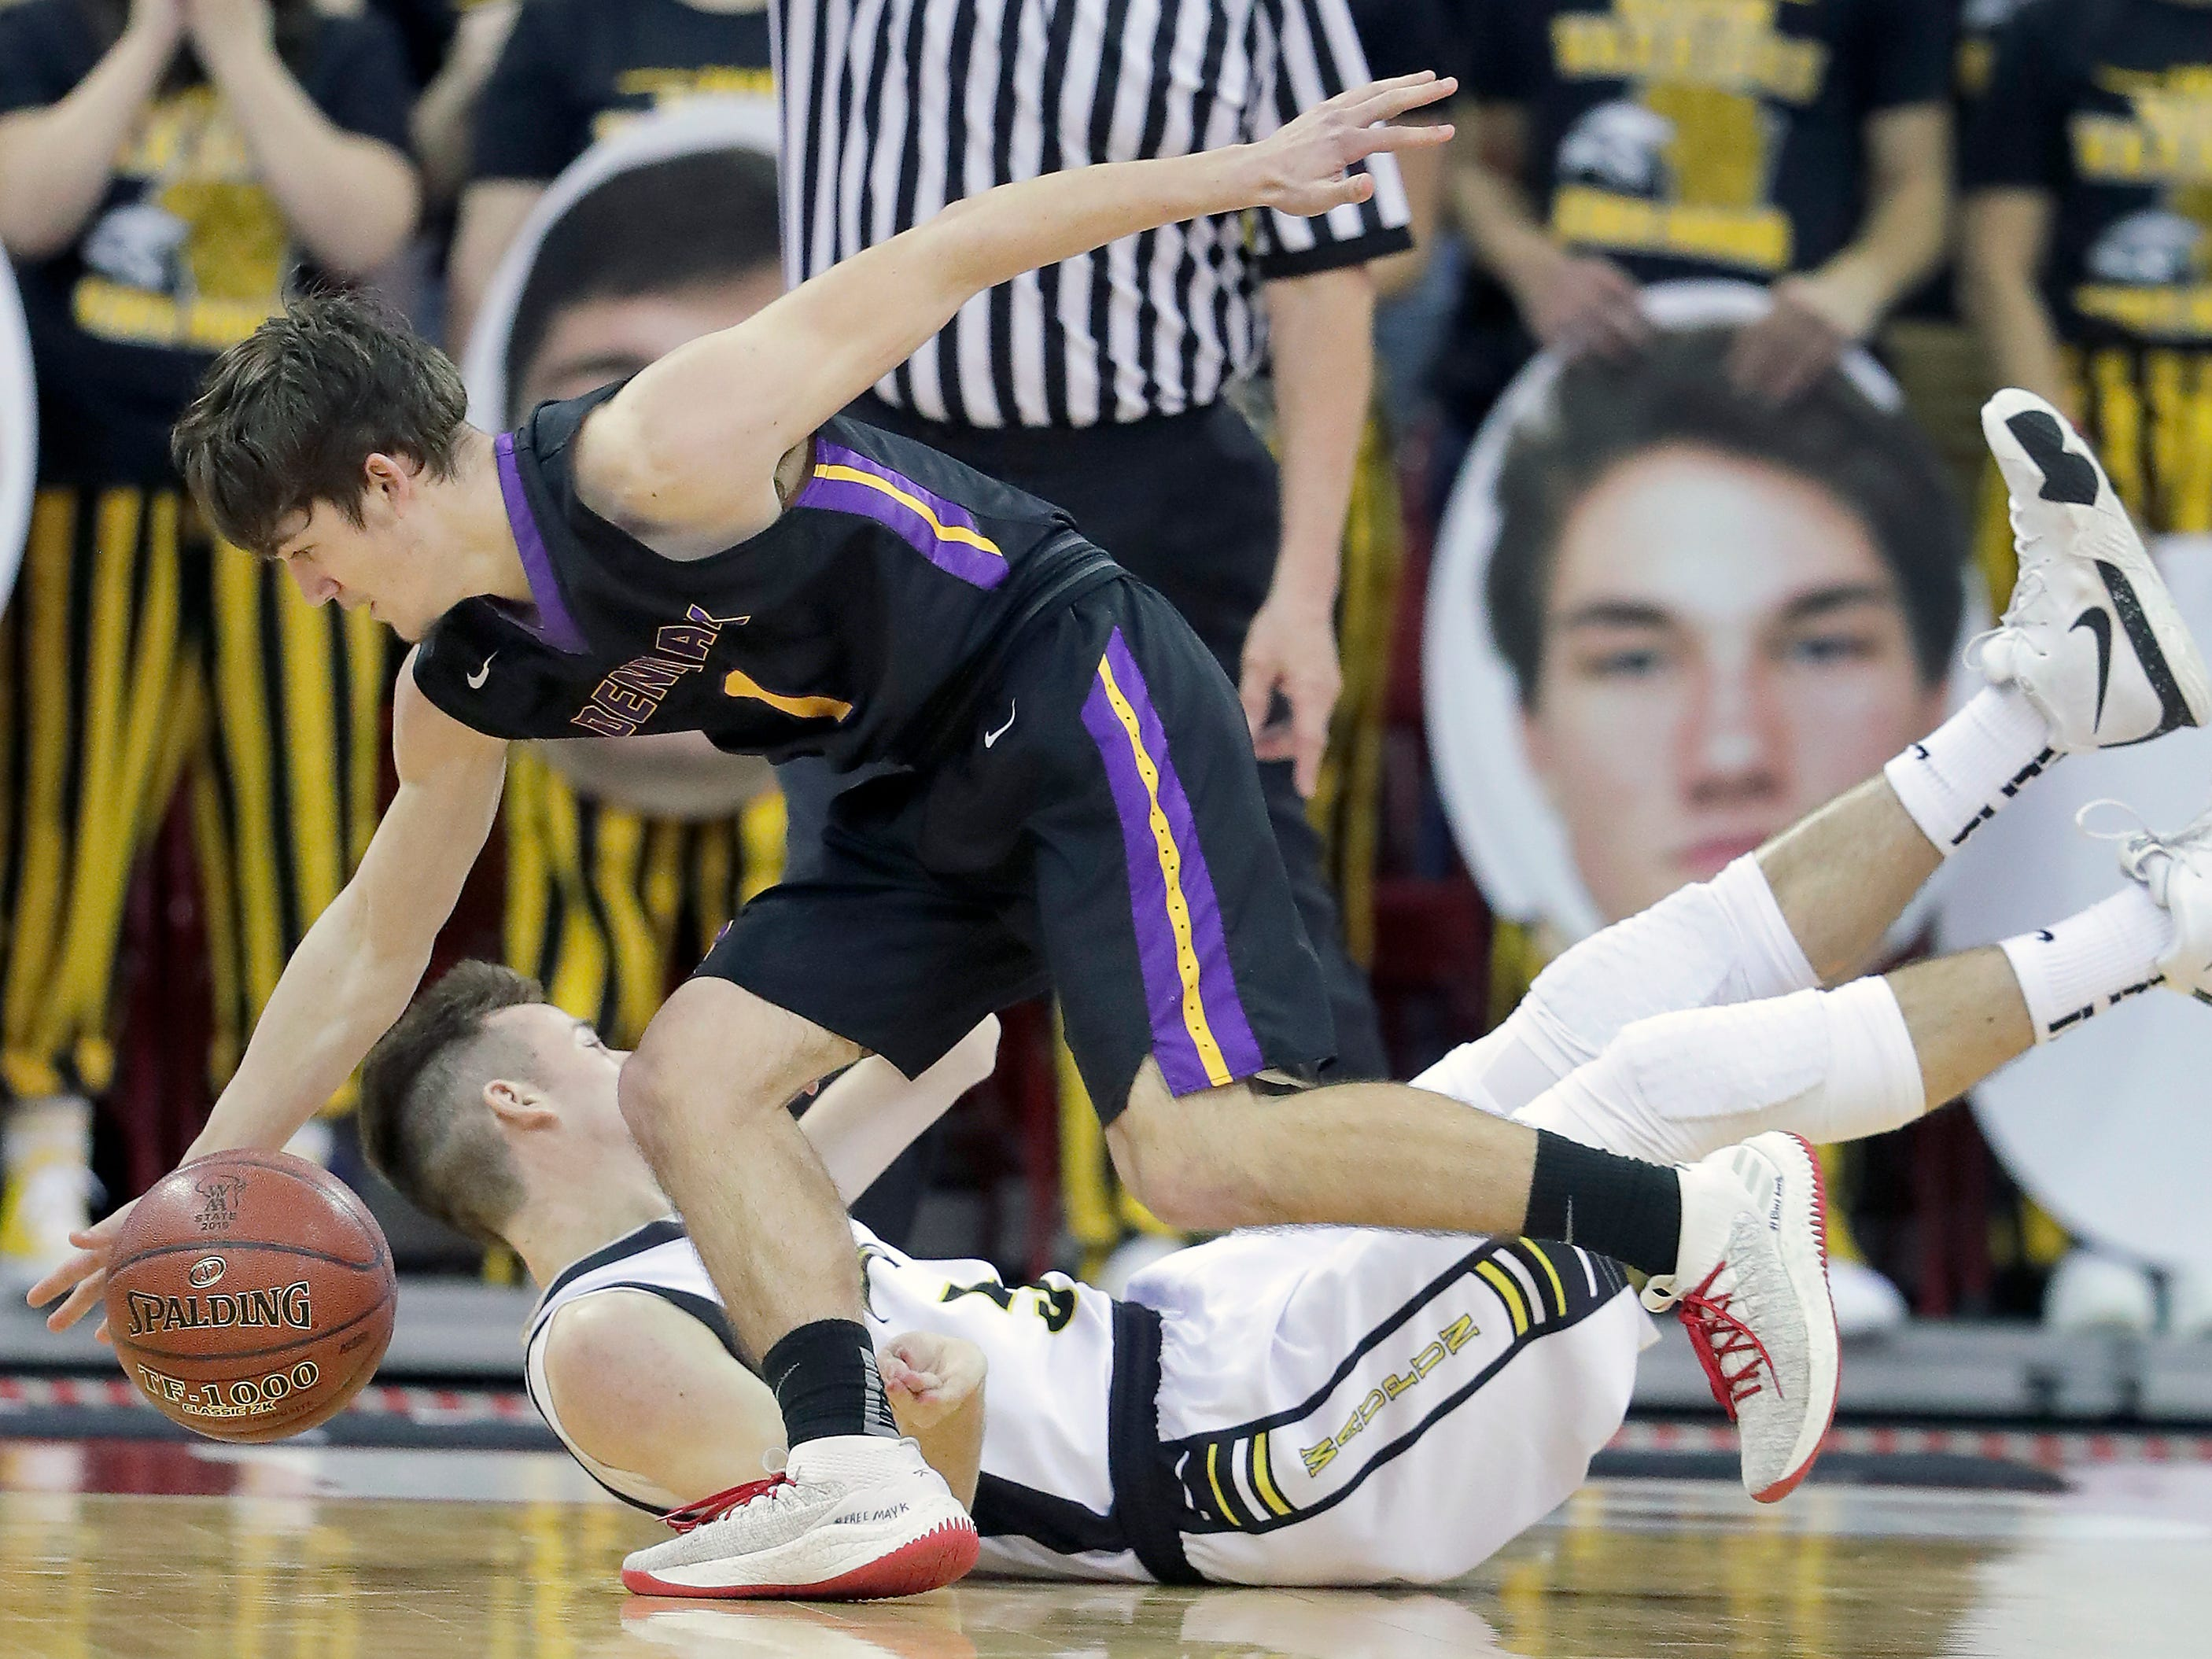 Denmark High School's #1 Seth Alexander against Waupun High School's #5 Alec Cunningham during their WIAA Division 3 boys basketball state semifinal on Thursday, March 14, 2019, at the KohlCenter in Madison, Wis.  Waupun defeated Denmark 60 to 43.